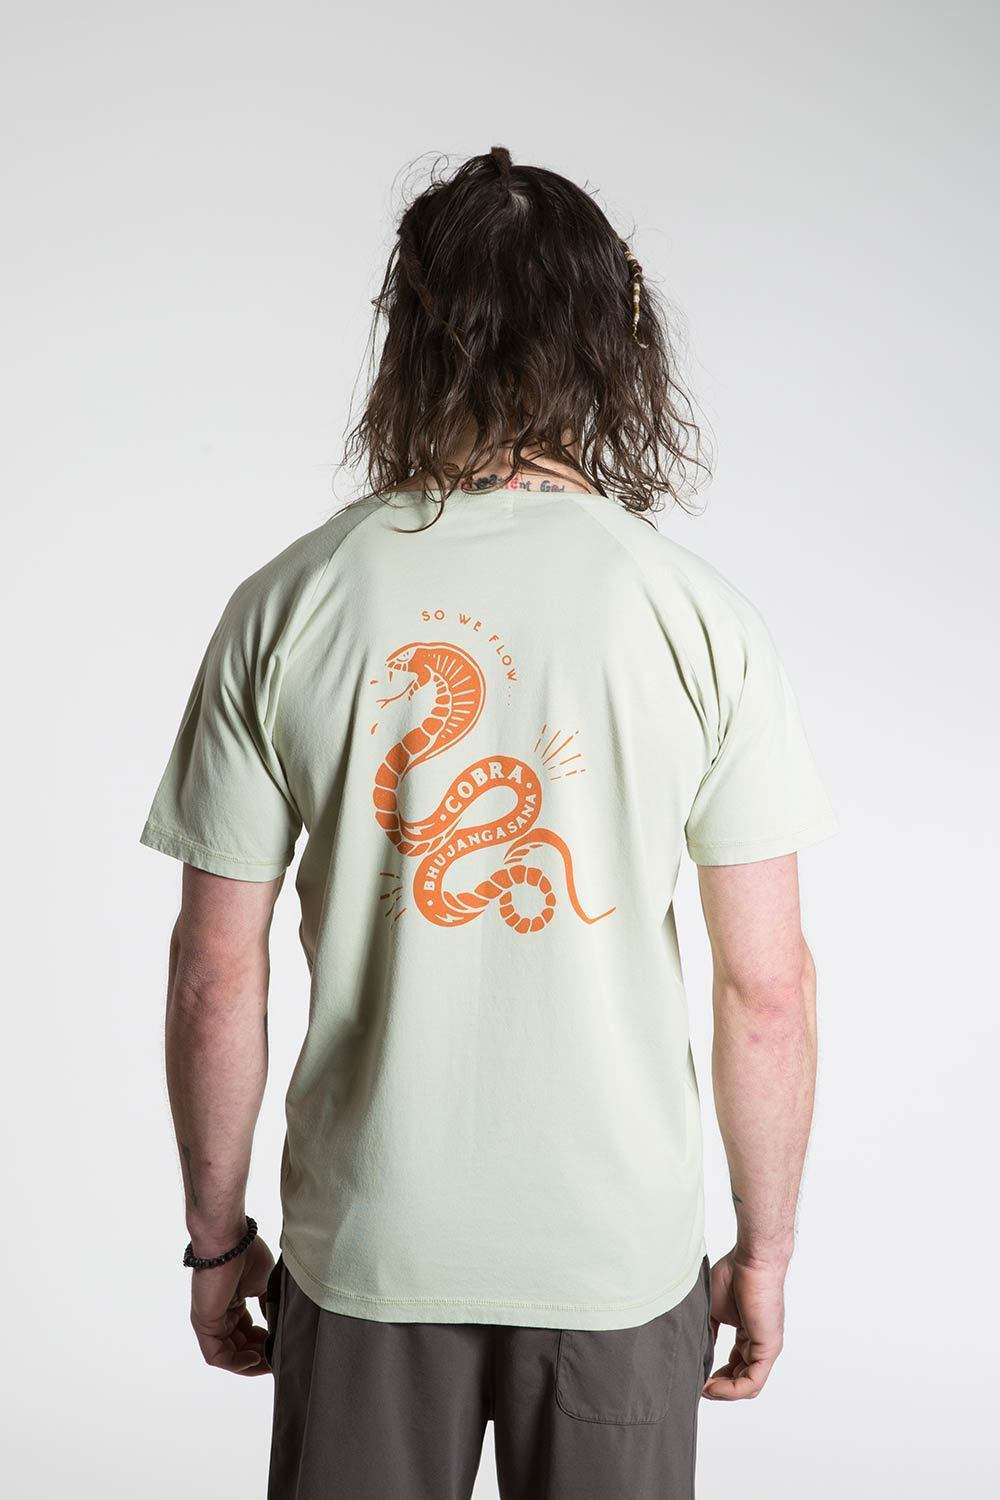 so we flow... mens green yoga t-shirt with cobra graphic back view